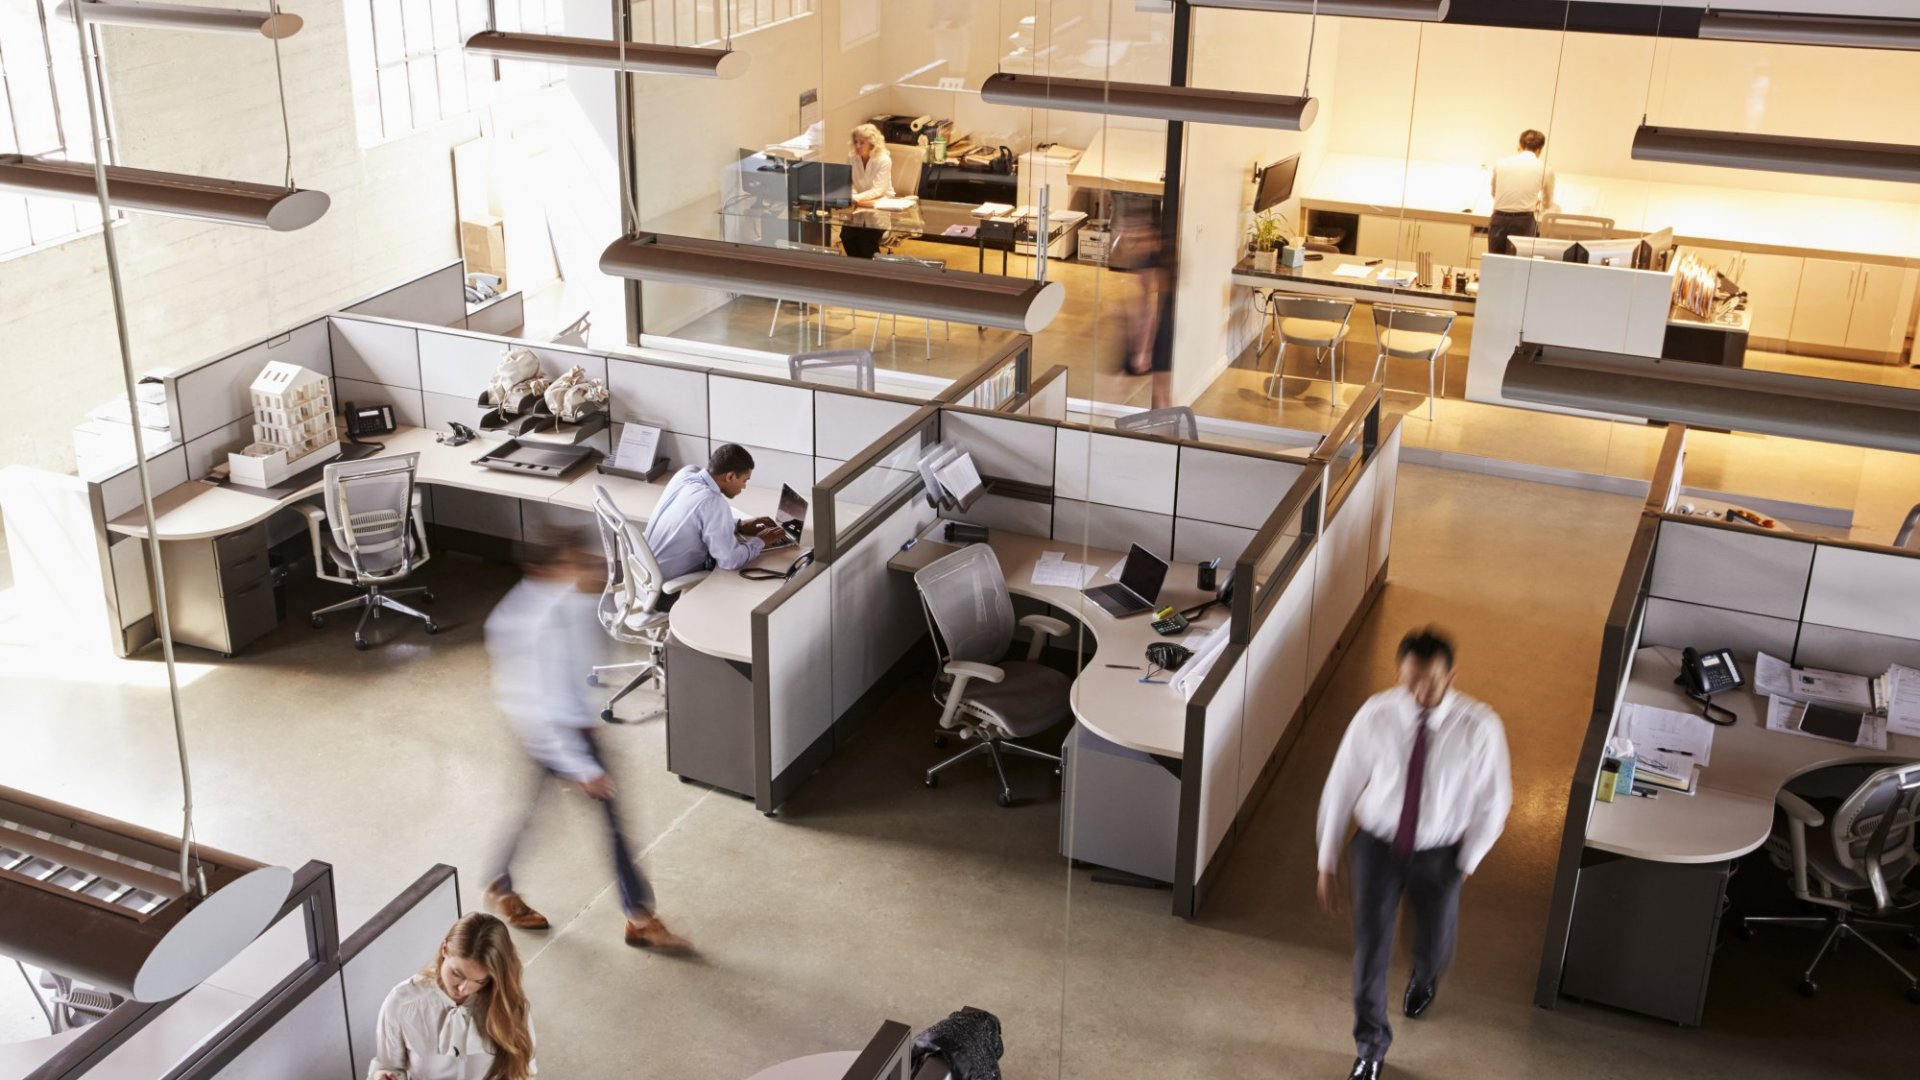 6 Entrepreneurs Share Evolving Views on Office Space in the Covid-19 Era